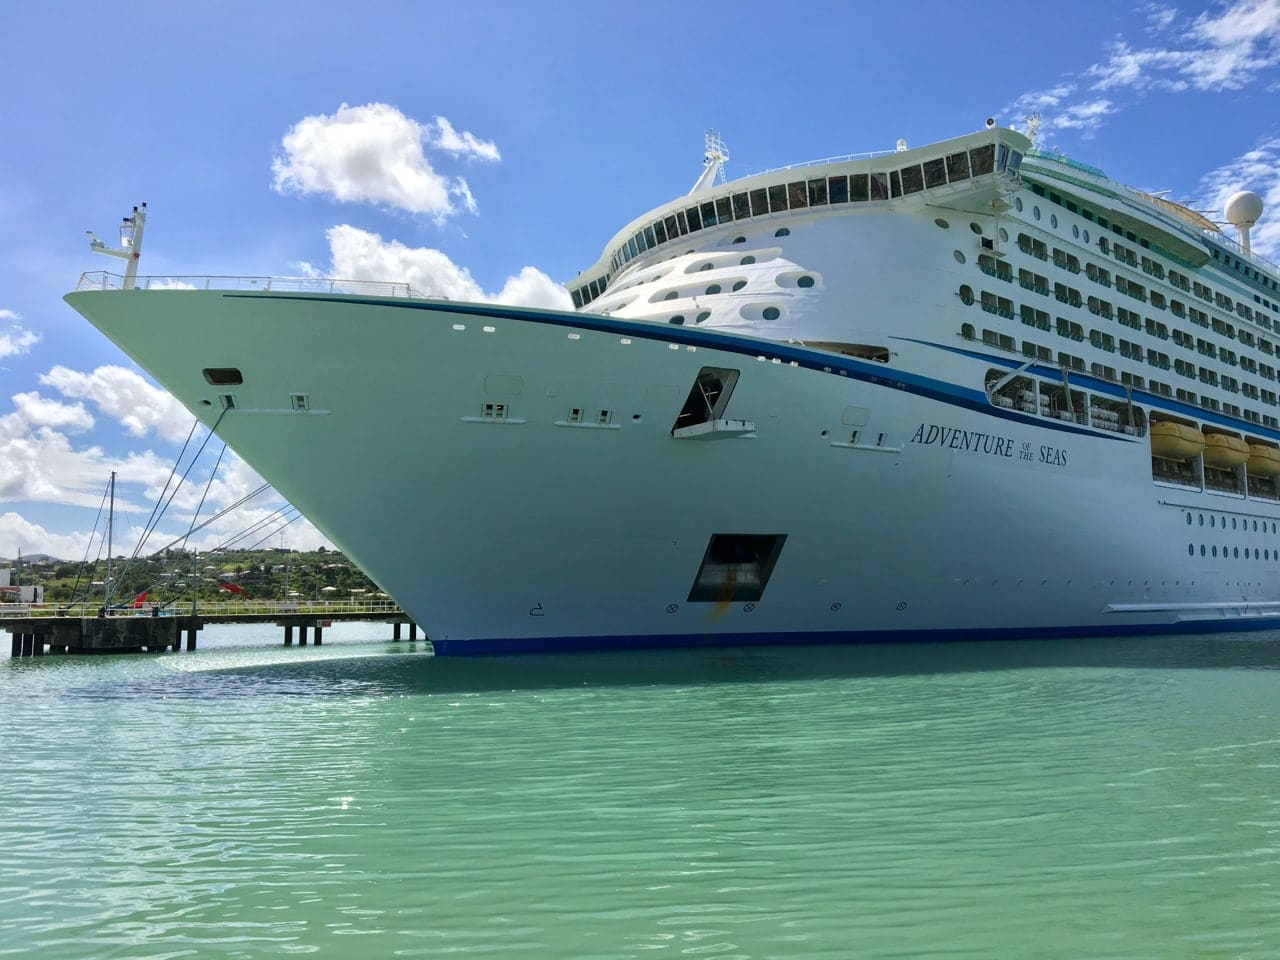 The Adventure of the Seas, our boat for our southern Caribbean cruise.